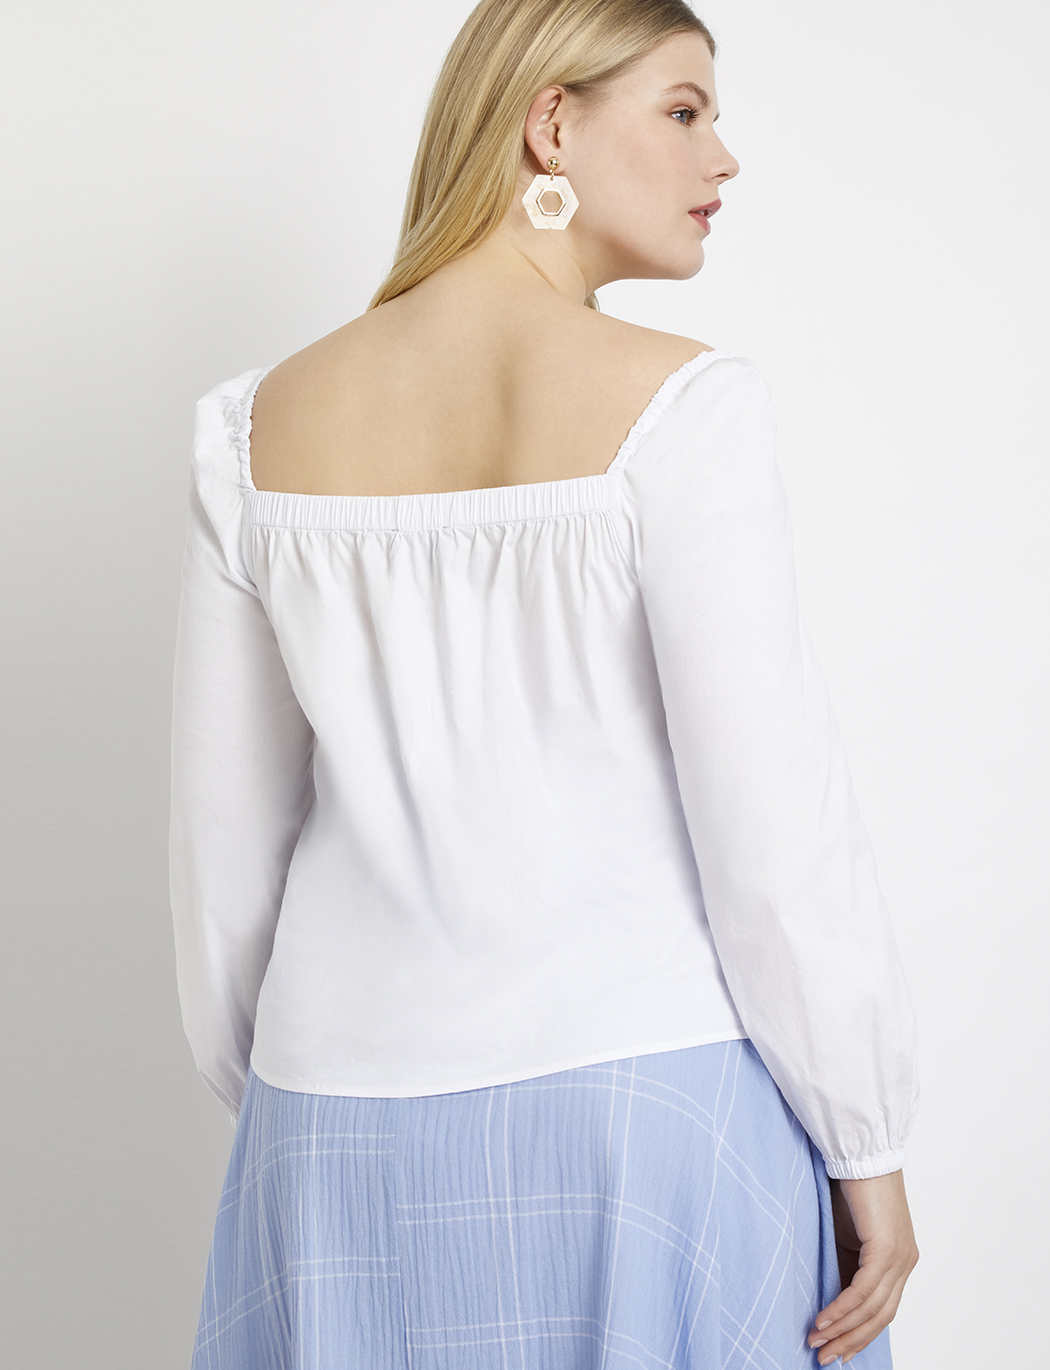 Sweetheart Neckline Button Detail Top